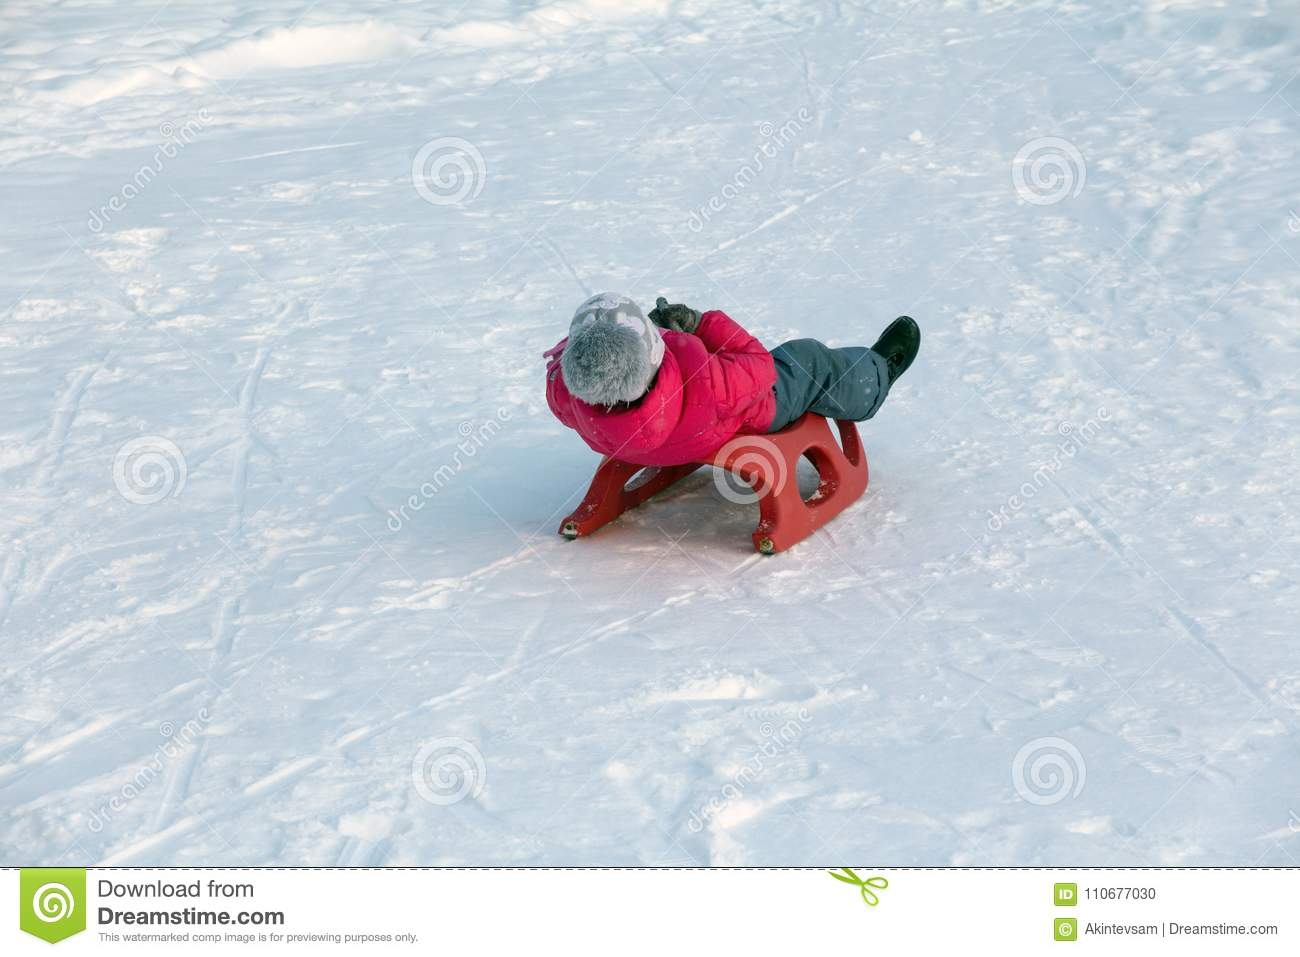 Girl in a red jacket rides off a snow slide